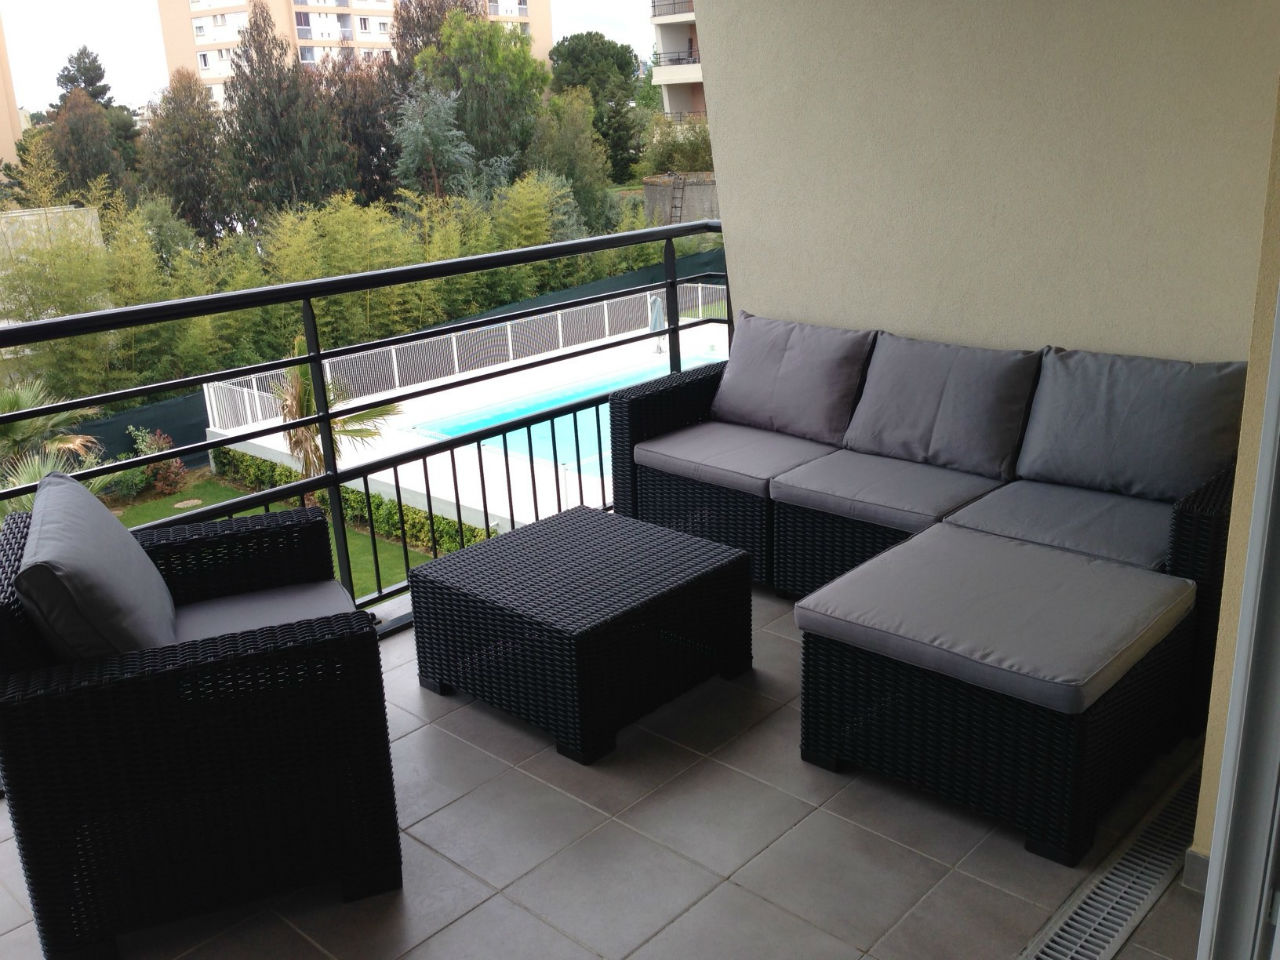 Comment am nager sa terrasse for Salon en rotin pour interieur